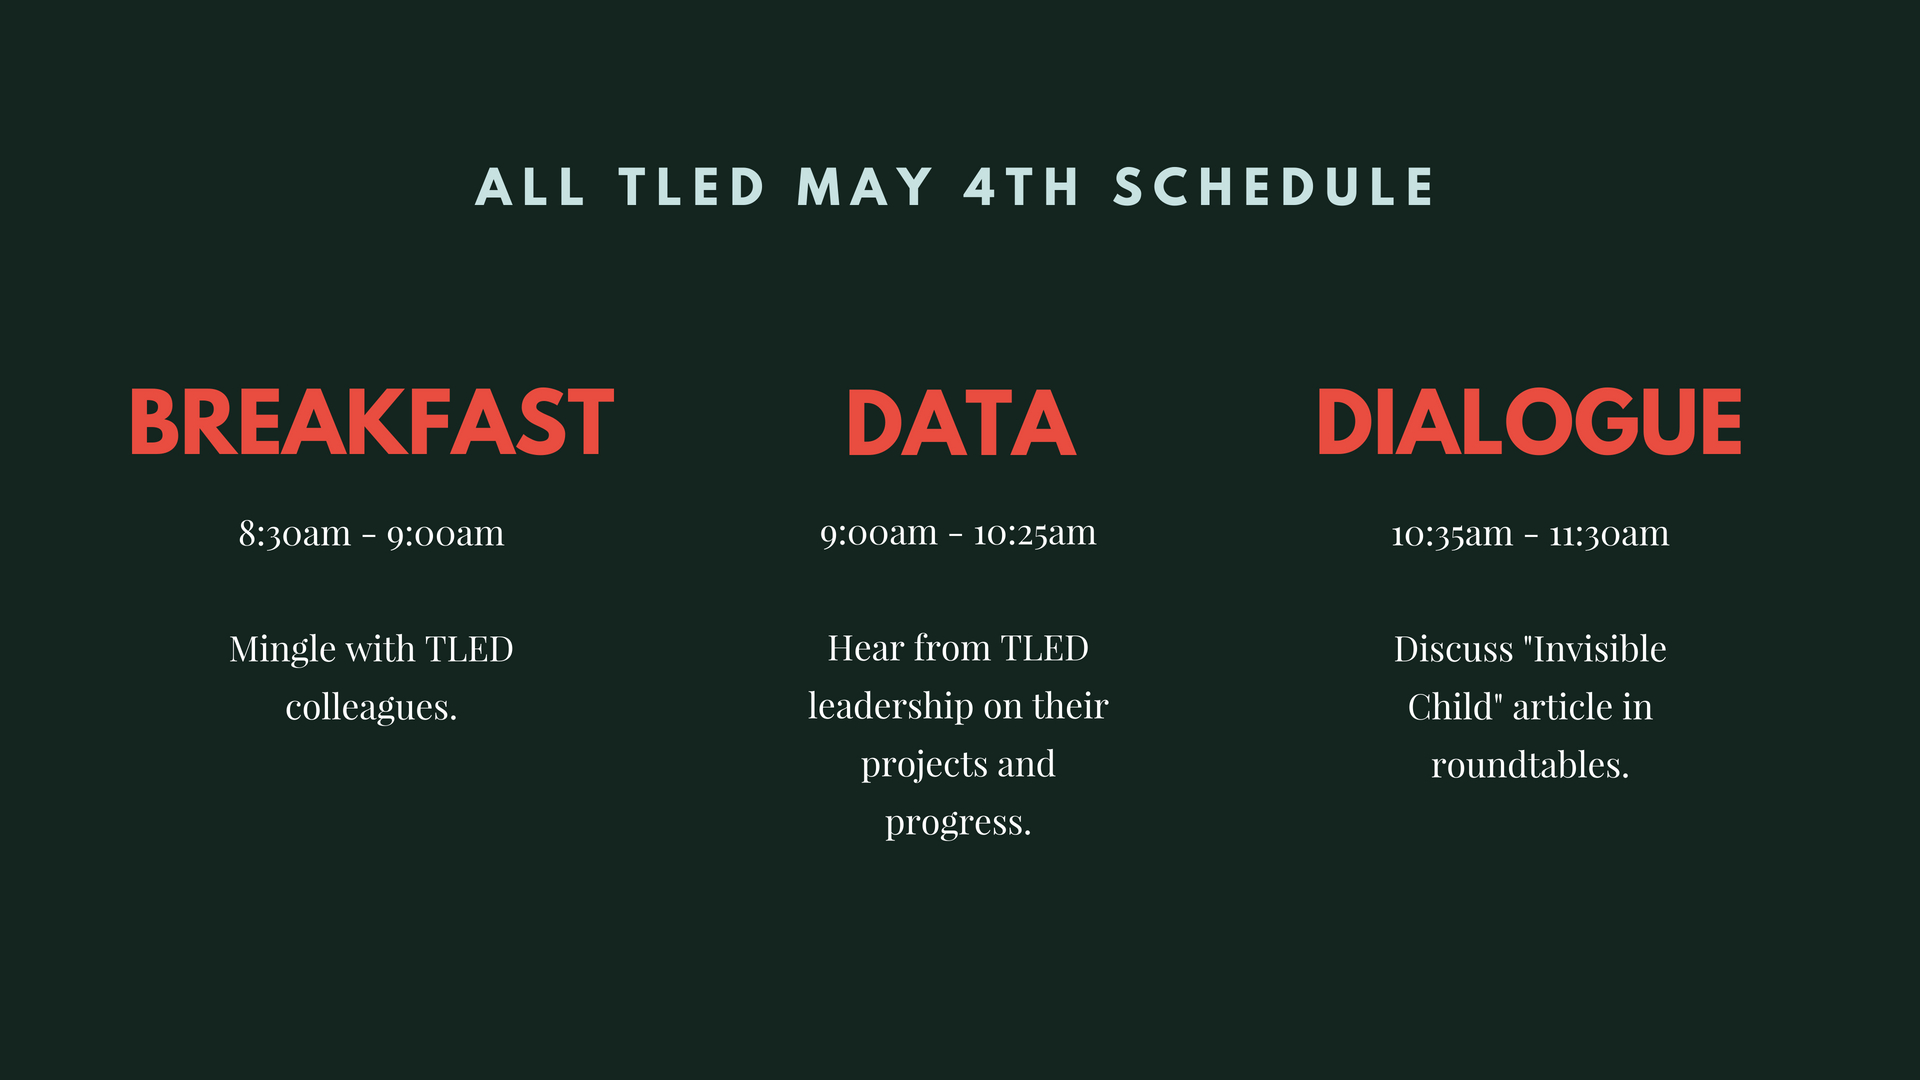 All TLED May 4th Schedule